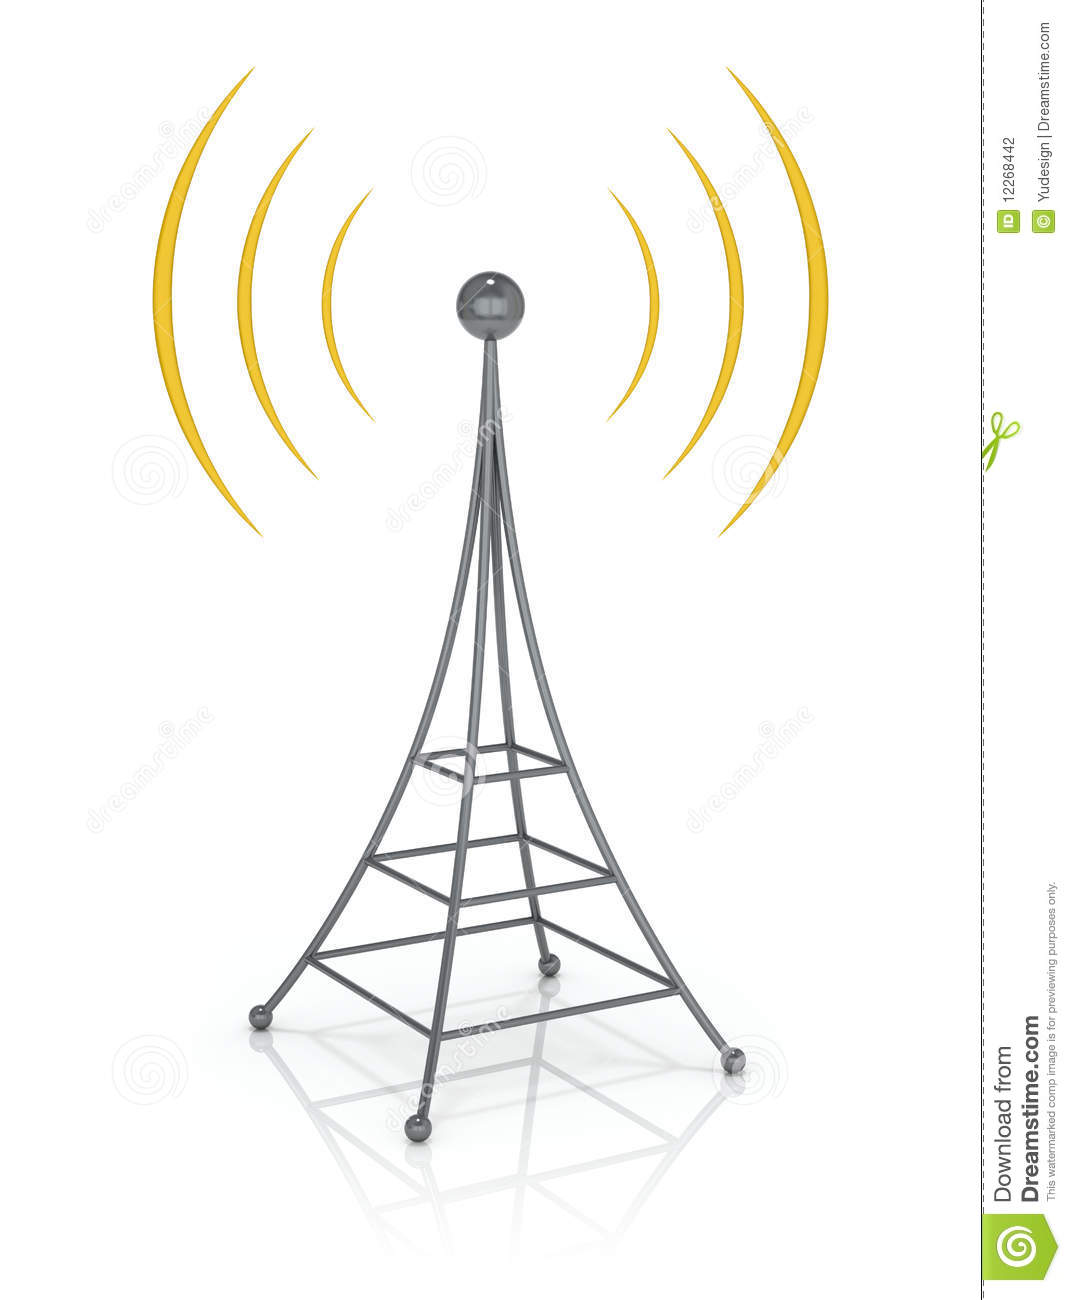 Radio Tower Clipart - Clipart Kid